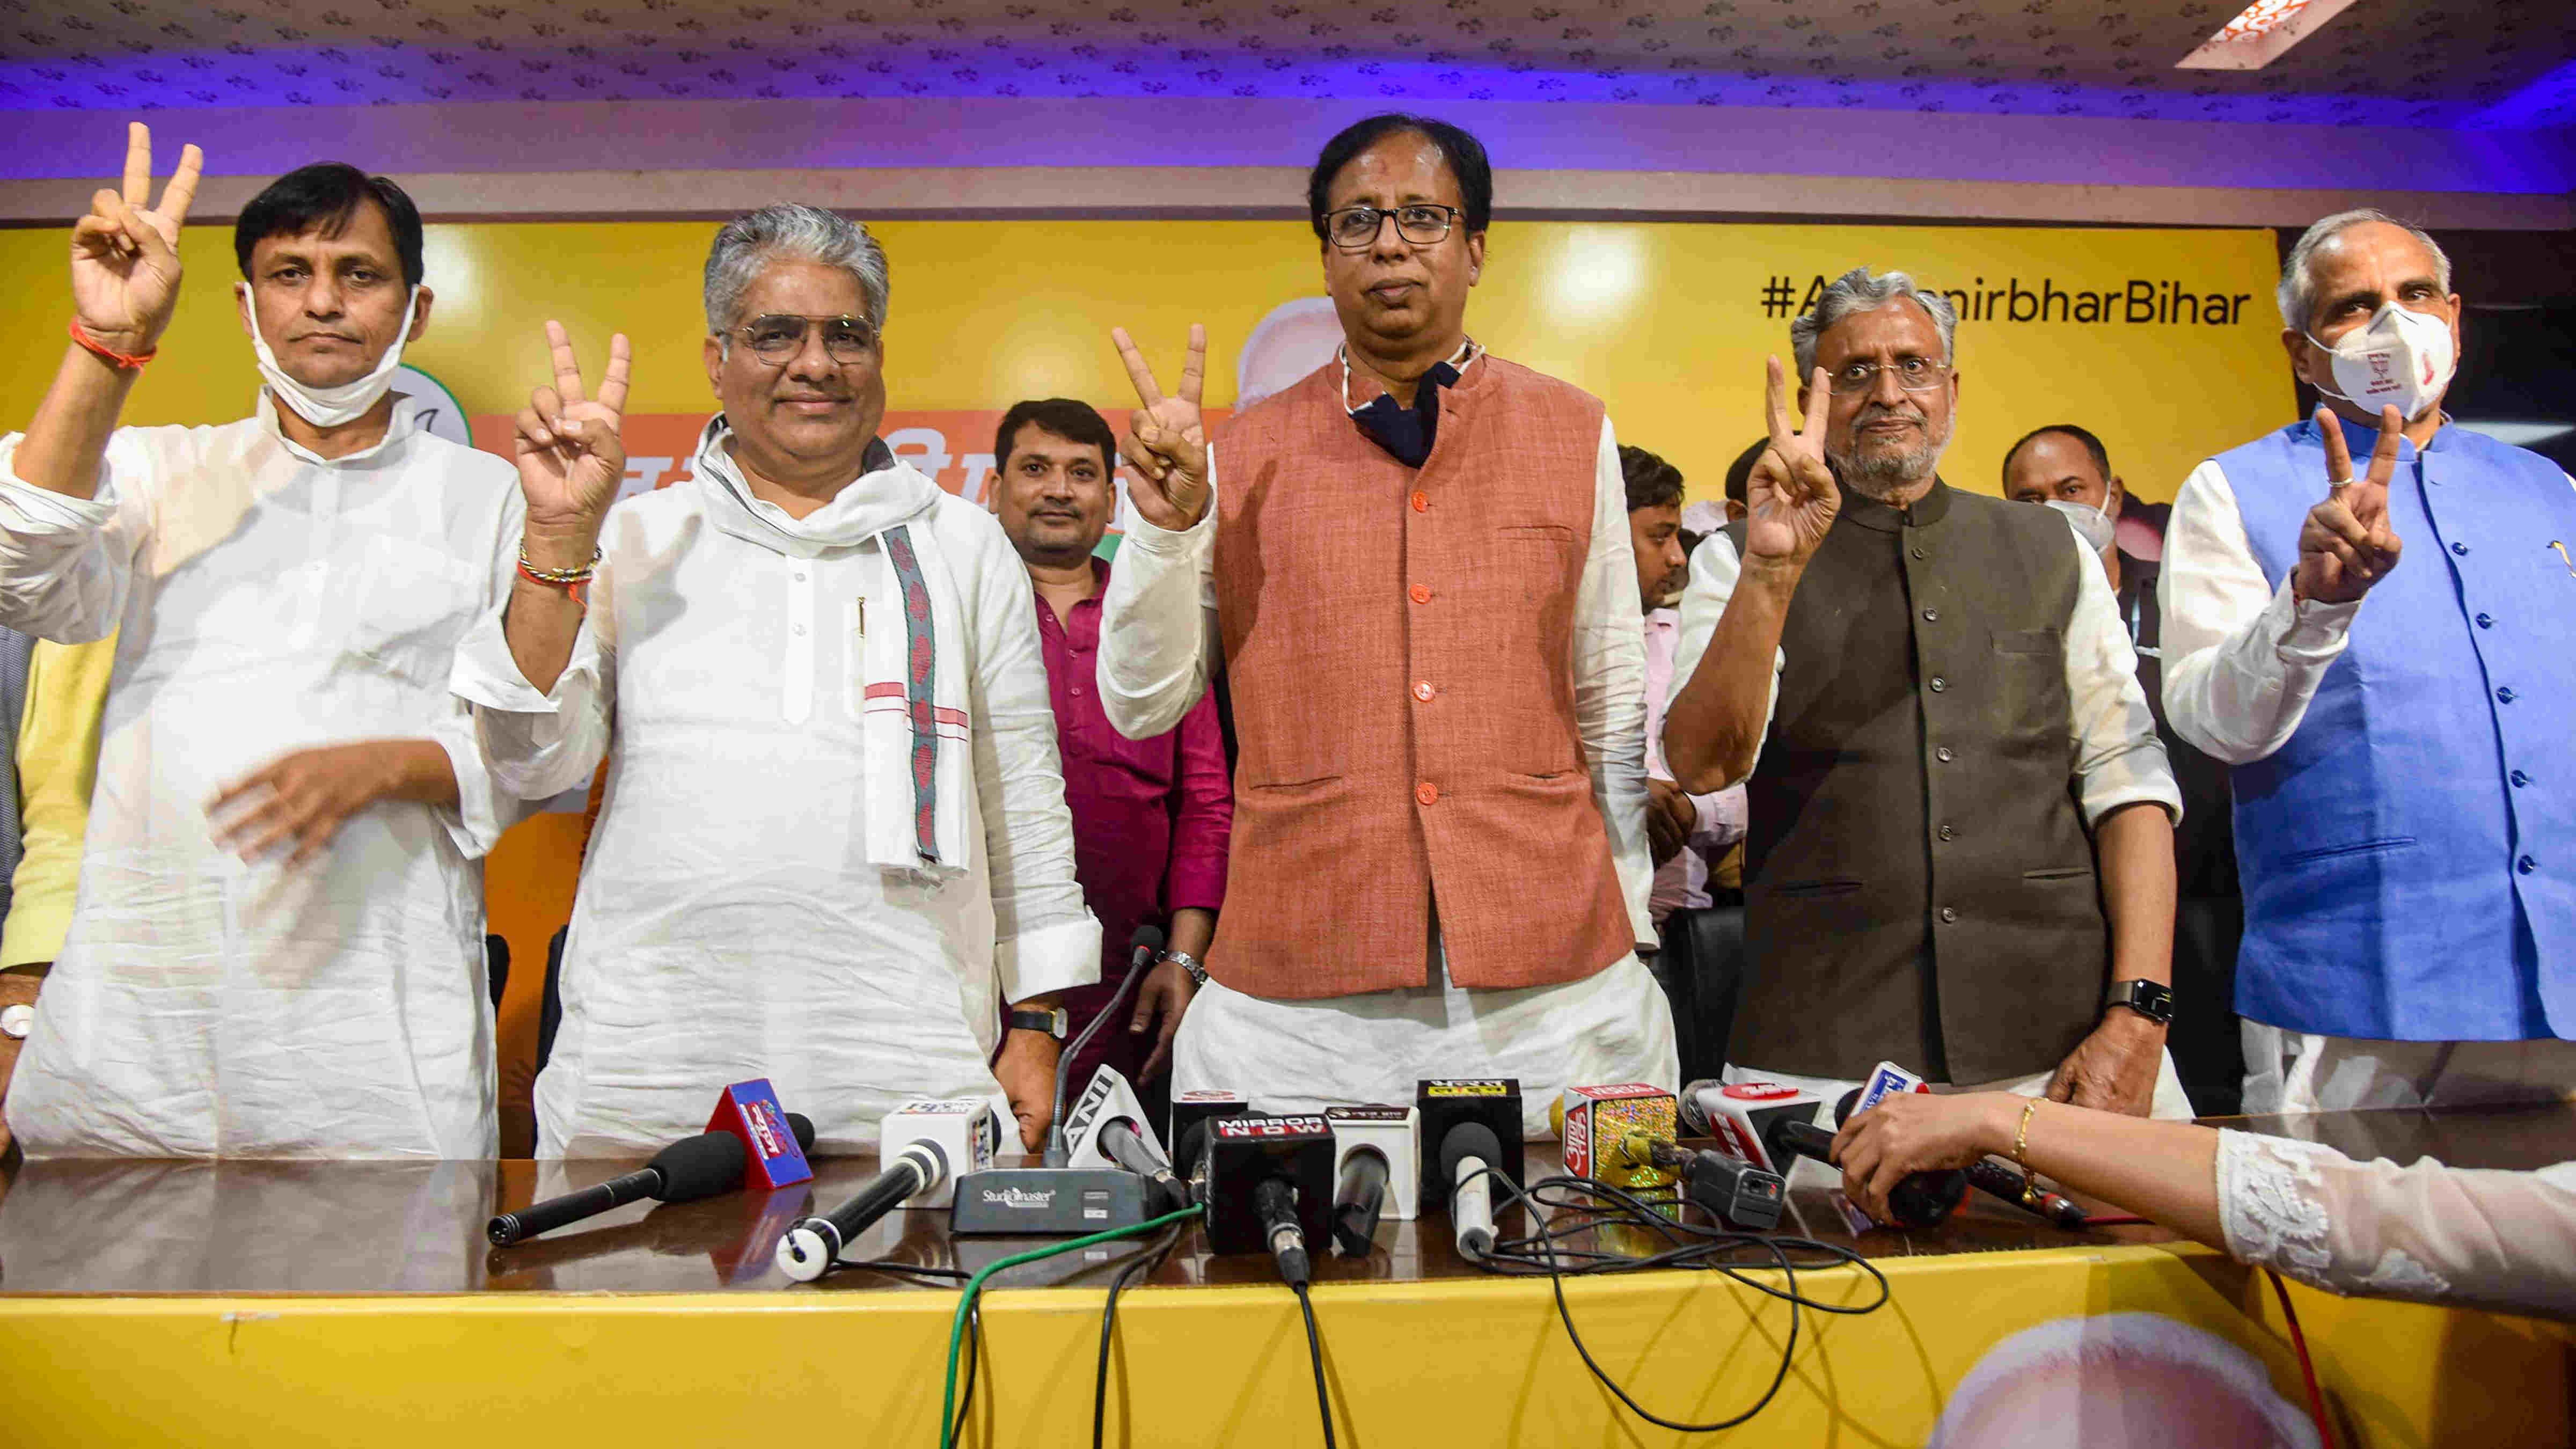 Bihar Deputy CM Sushil Kumar Modi, BJP Bihar in-charge Bhupendra Yadav, BJP Bihar President Sanjay Jaiswal and MoS Nityanand Rai flash victory sign during a press conference following NDAs lead during the counting of votes for the Bihar Assembly Elections results, in Patna, Tuesday, Nov 10, 2020.